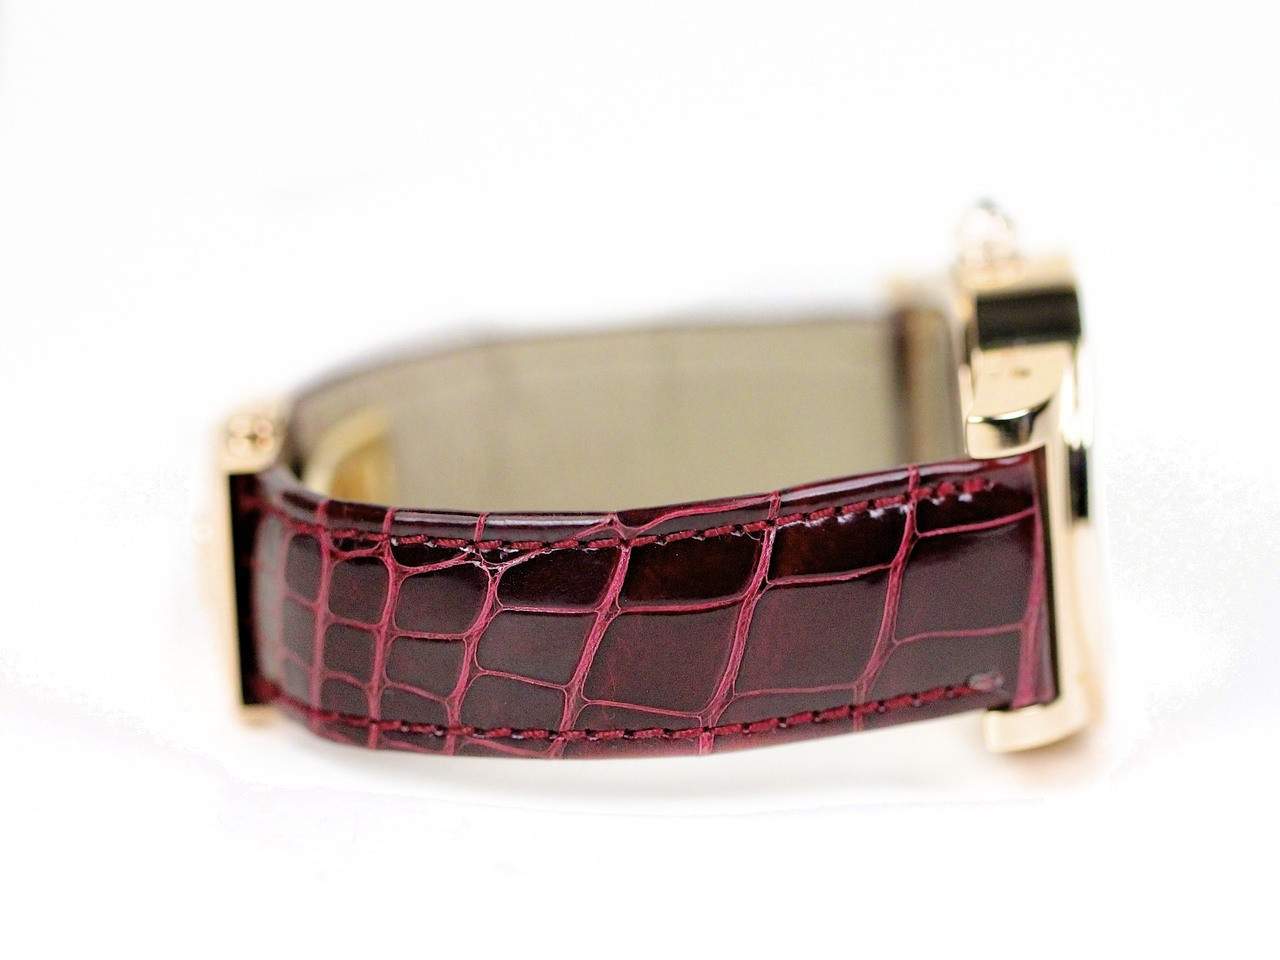 Lacquered Burgundy Leather Strap - de Grisogono Watch - Tondo RM N52/A  - Legend of Time - Chicago Watch Center